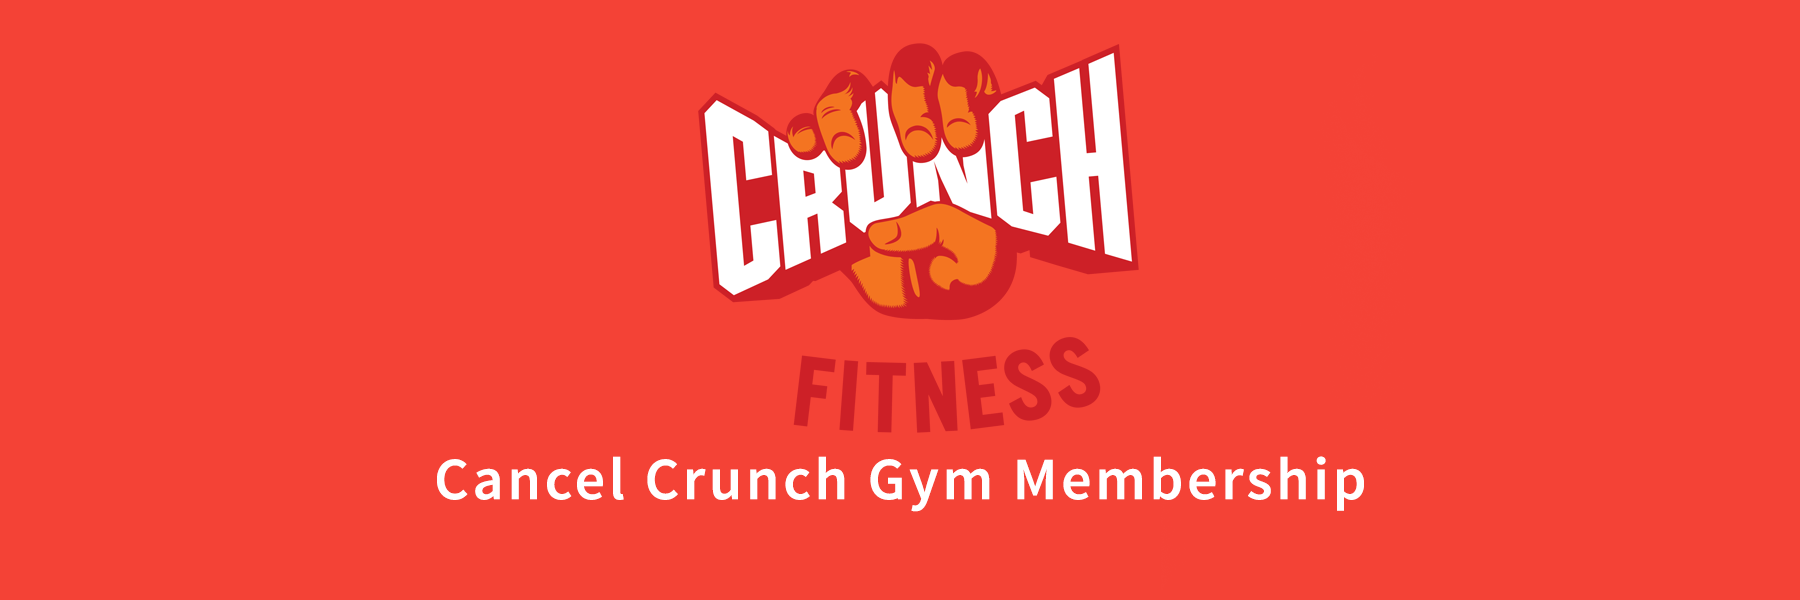 Cancel Crunch Gym Membership